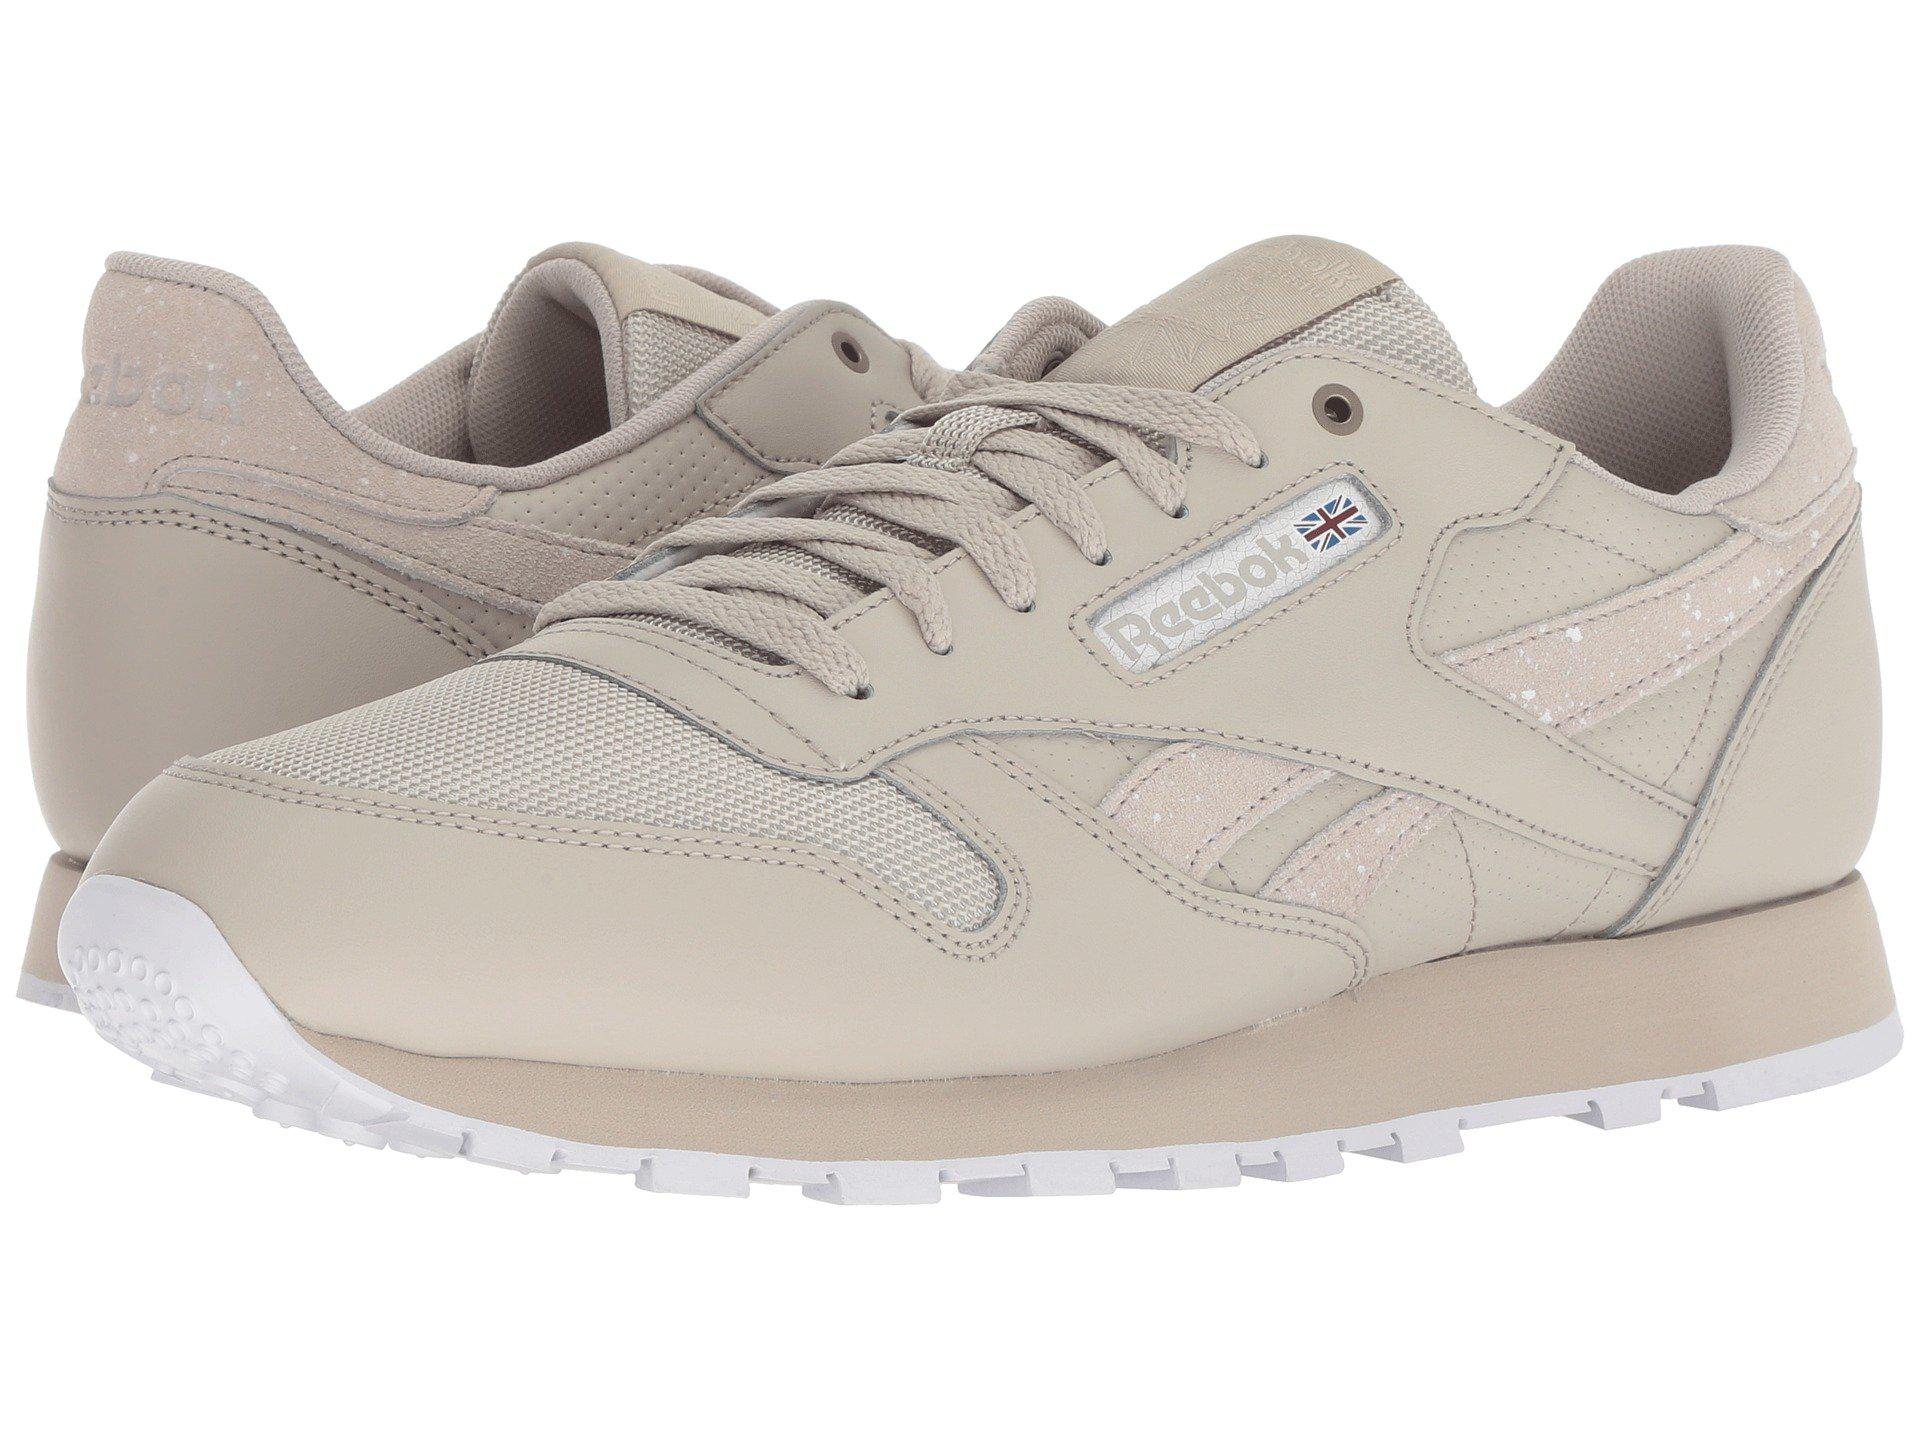 fb8c3ea9a67 Lyst - Reebok Classic Leather Mu in White for Men